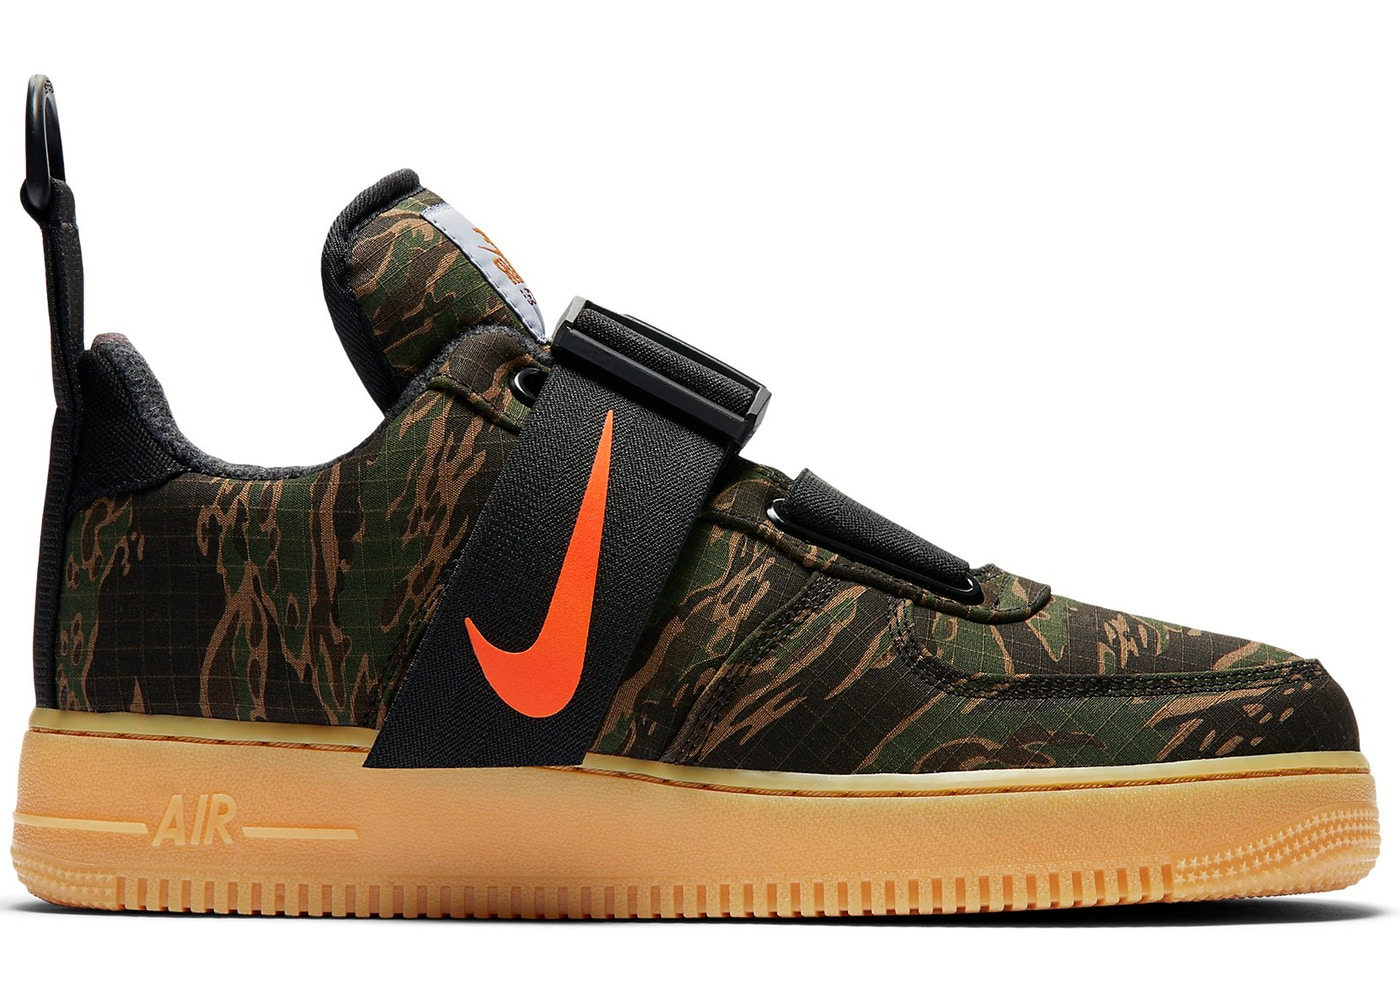 new release huge discount 50% off Nike Air Force 1 Low Utility Carhartt WIP Camo - AV4112-300